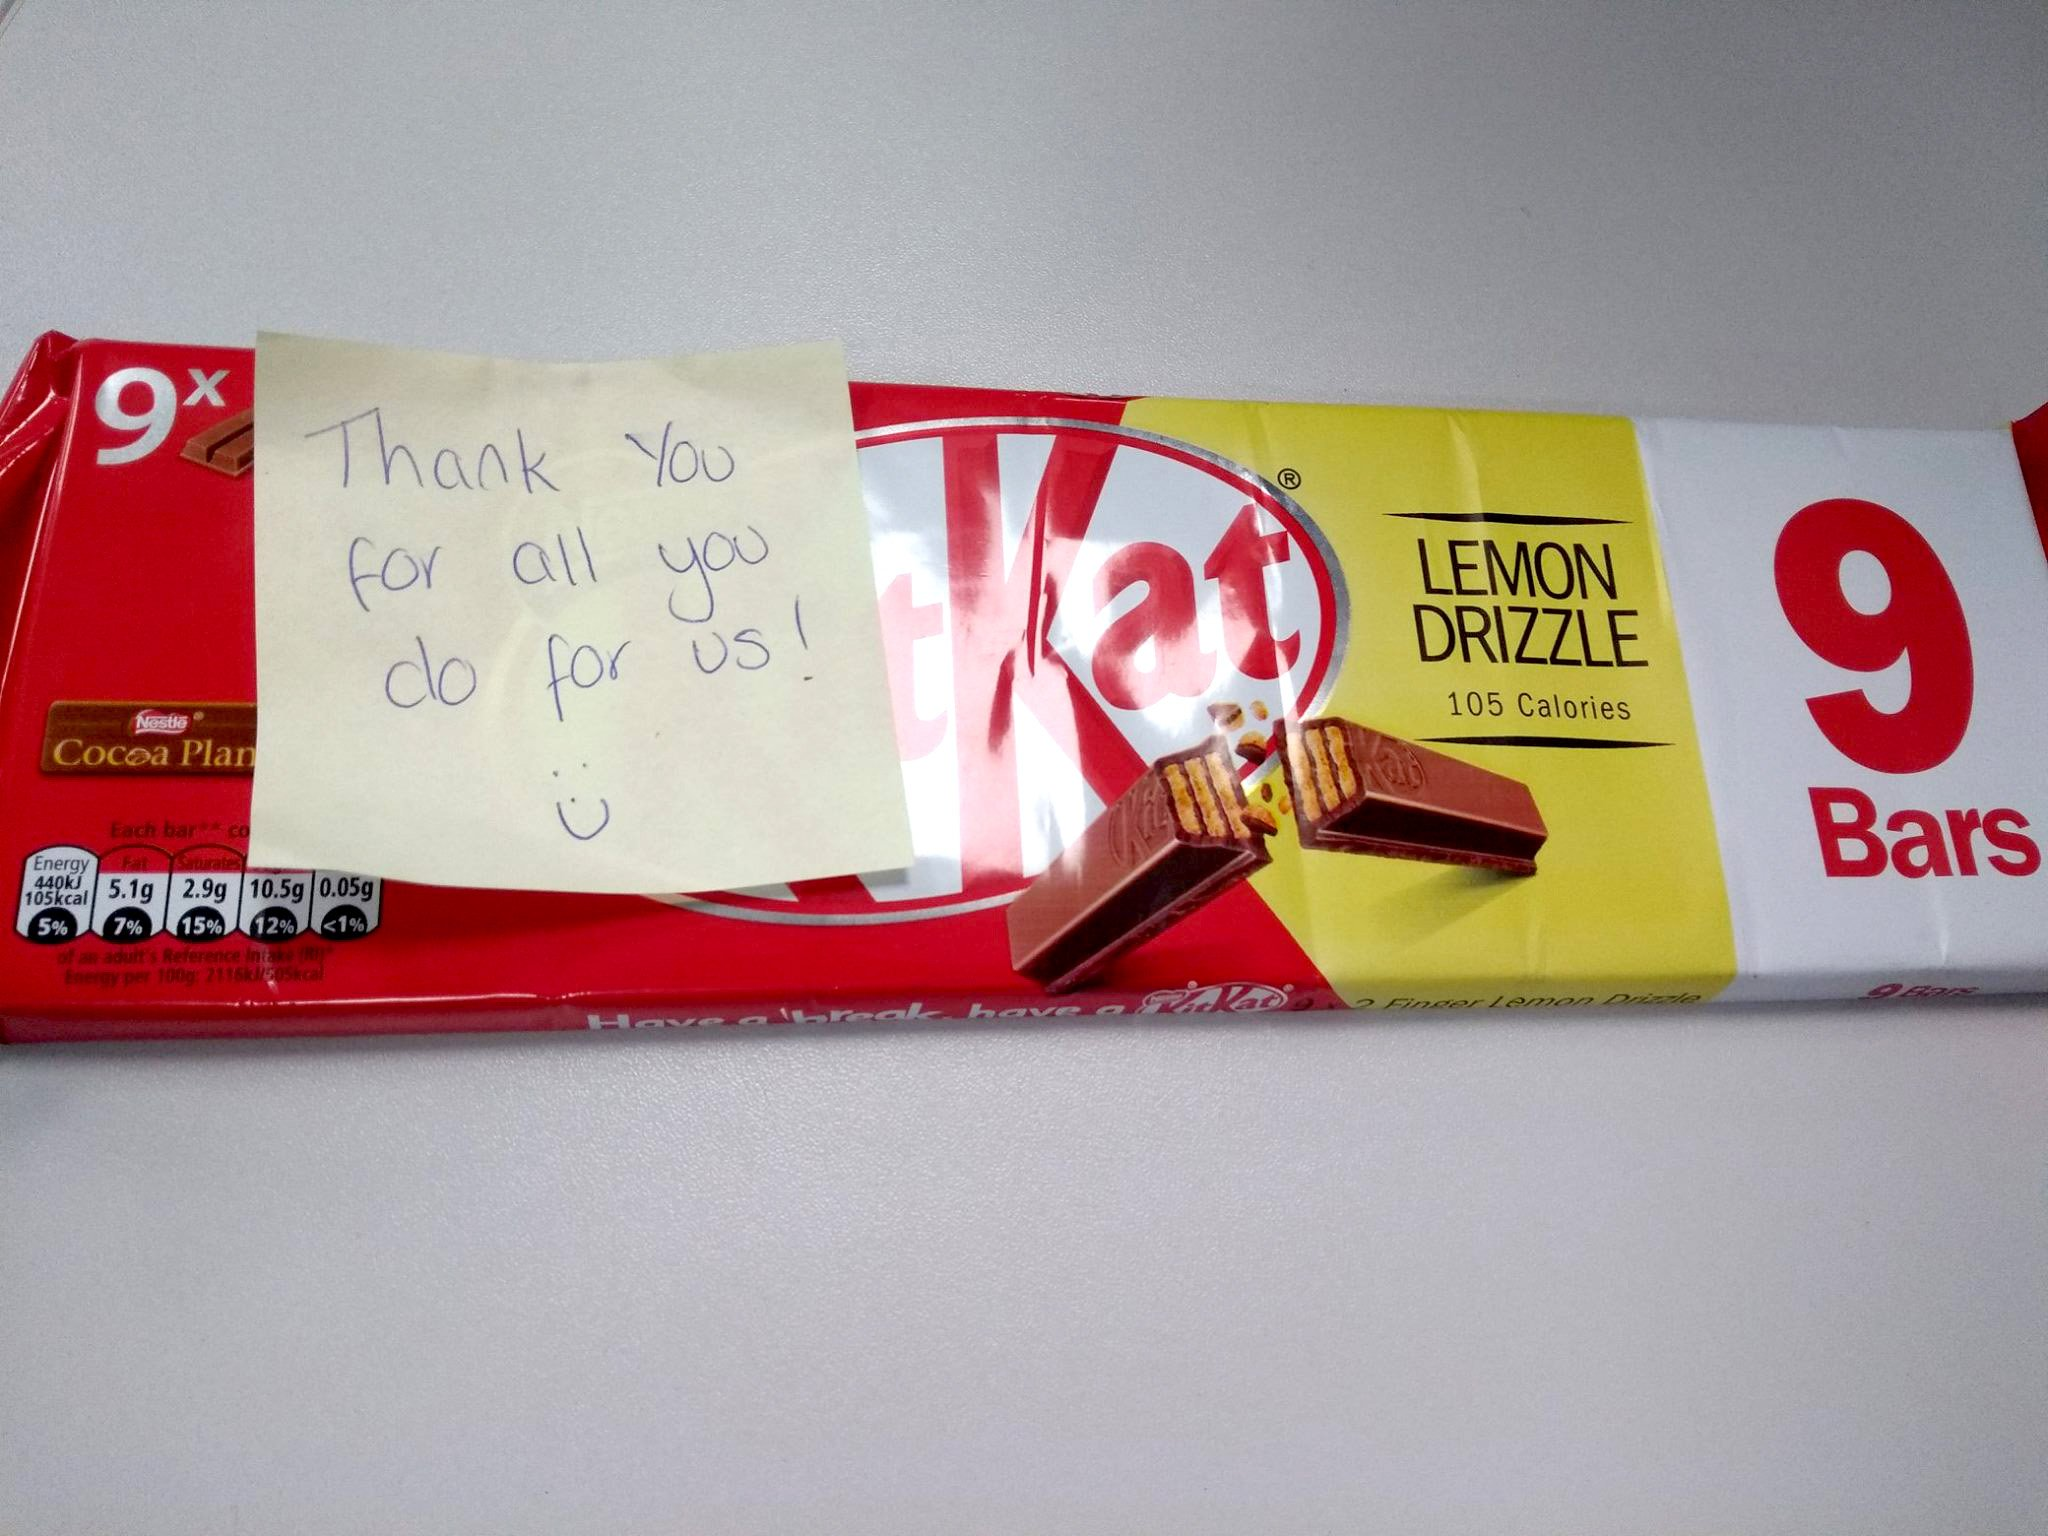 (Picture: Staffordshire Police) 'We have no idea who left this kind gesture and can only say this brought a smile to our faces' say PC Hughes and PC Rigby. They were pleasantly surprised to return to their marked police car in Rugeley to find this pack of biscuits with a note left anonymously.